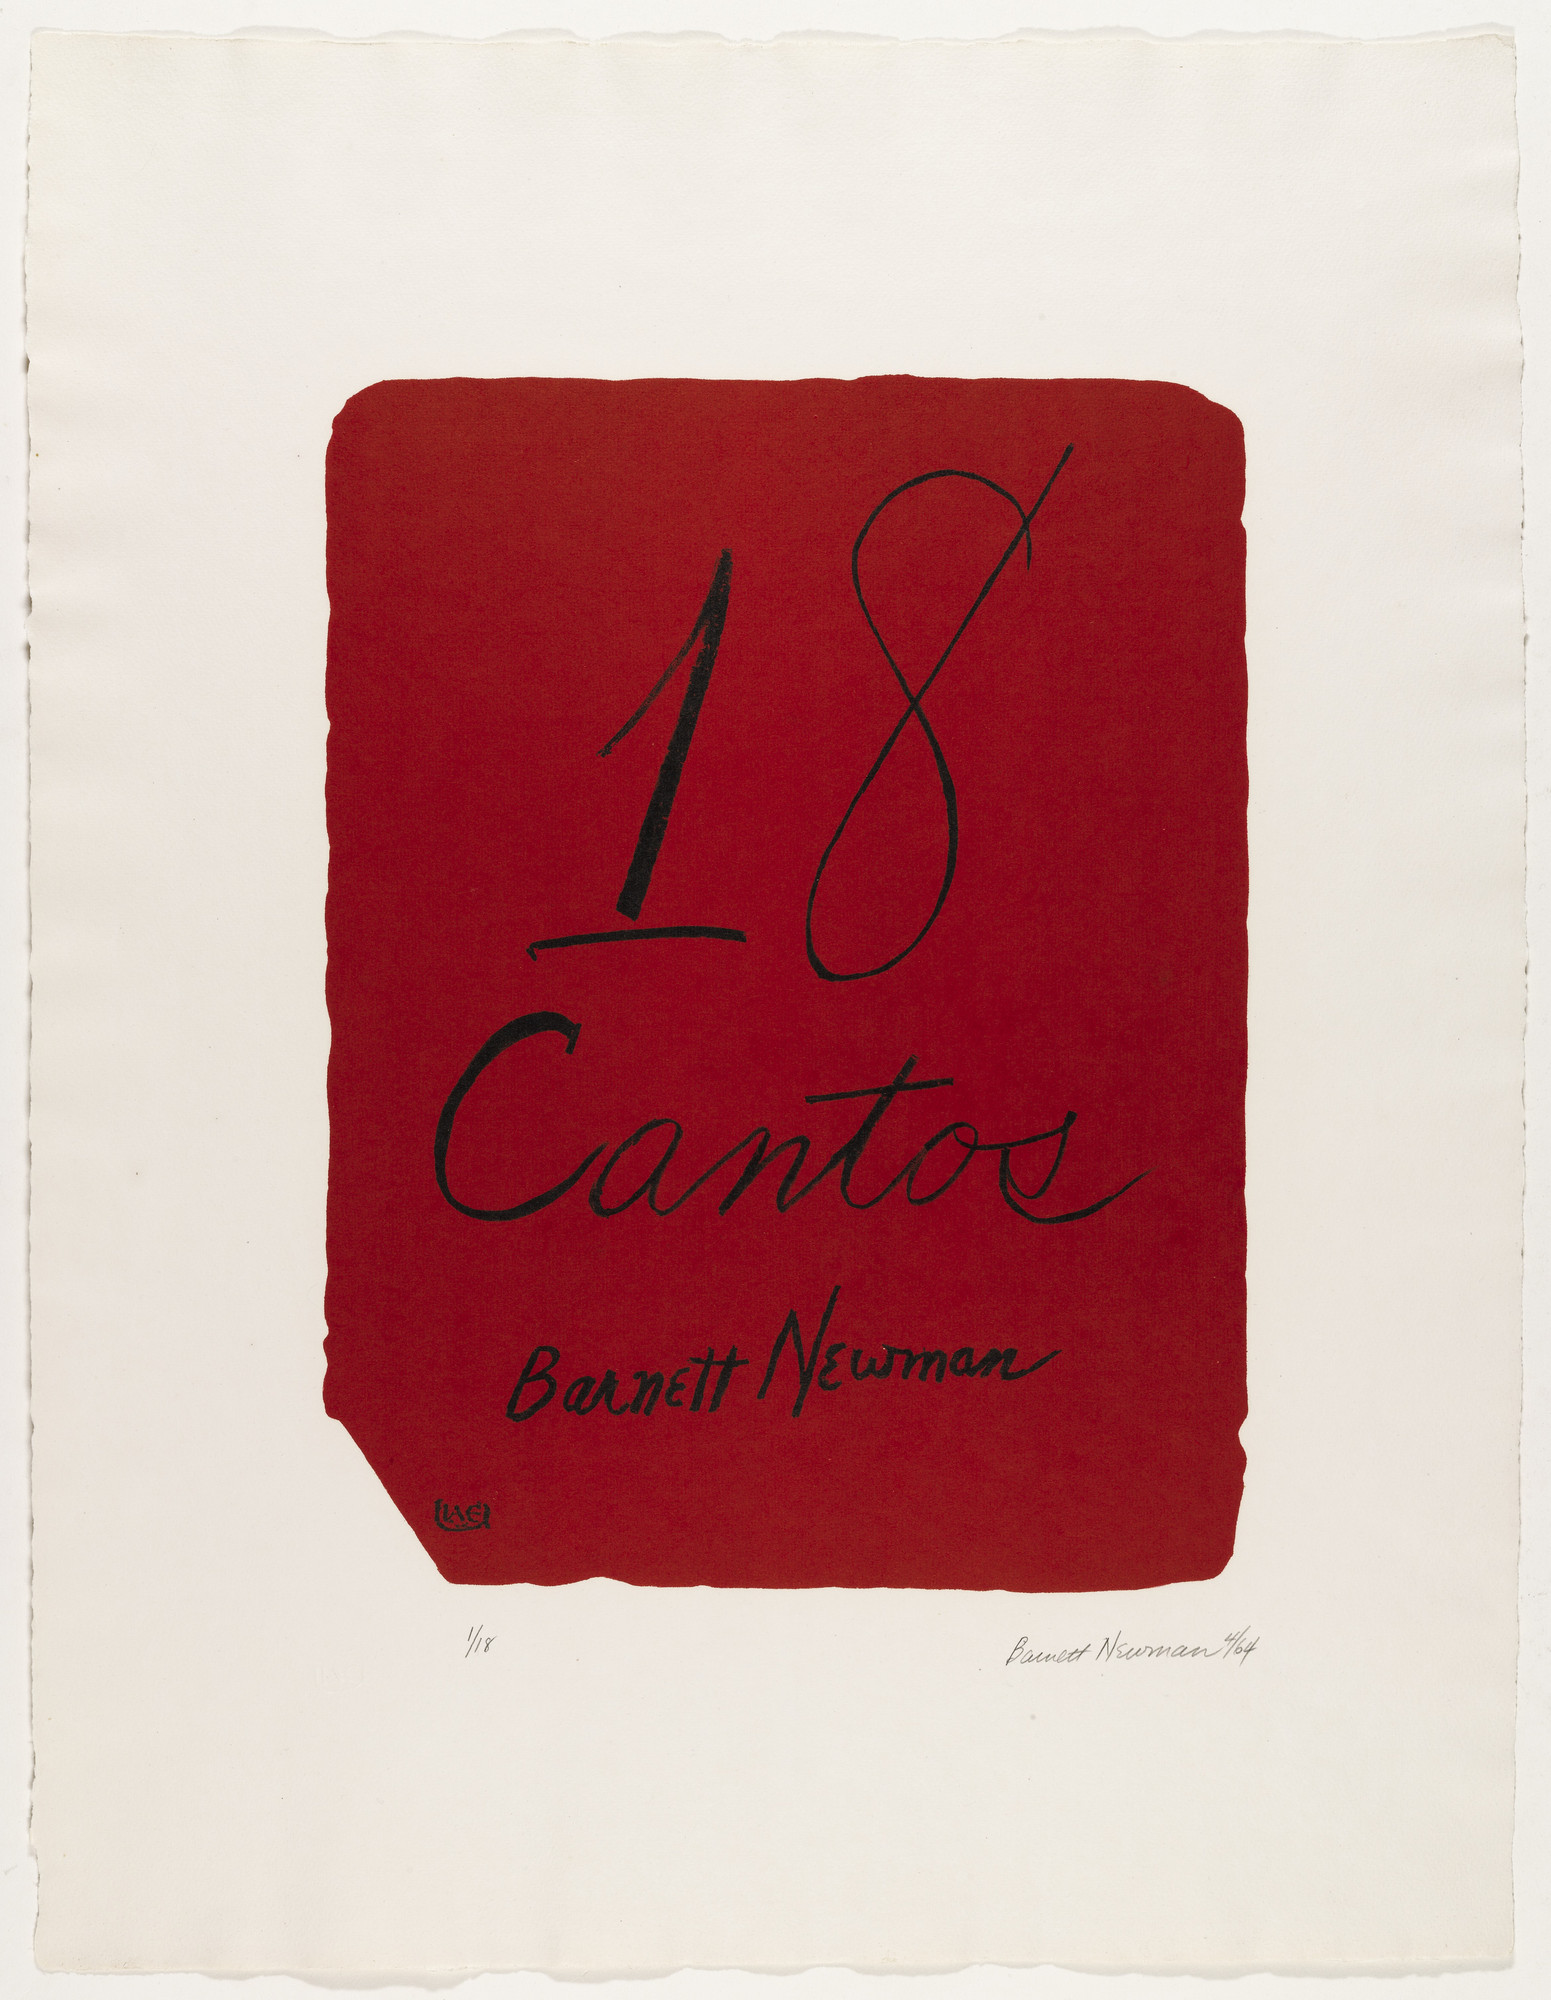 Barnett Newman. 18 Cantos. 1964  (Prints executed 1963-1964)